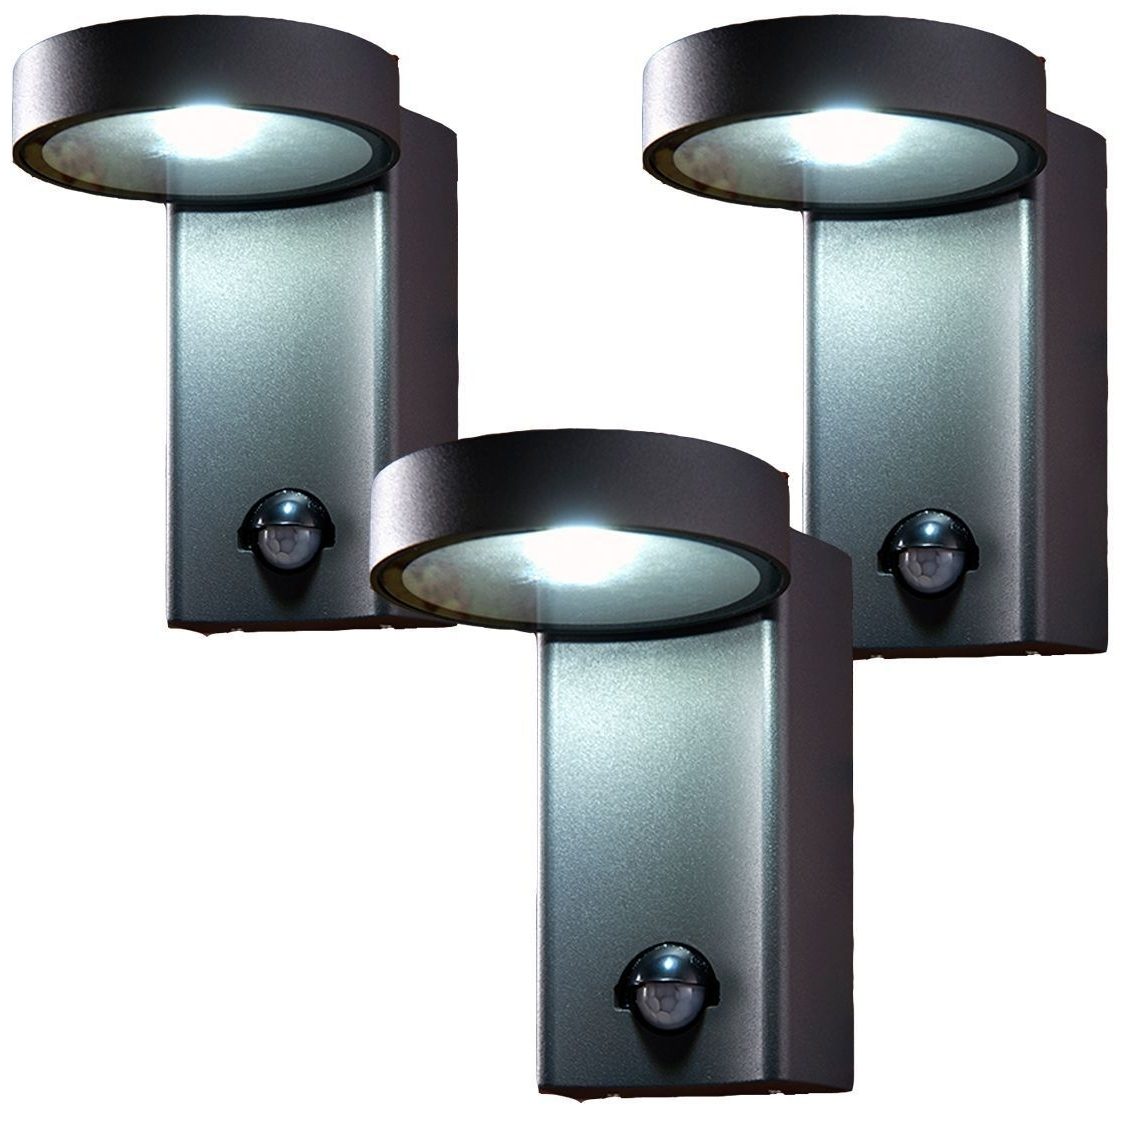 3 X Saxby 67696 Oreti Pir Dark Matt Anthracite 10W Ip44 Outdoor Wall Regarding Fashionable Outdoor Pir Wall Lights (View 2 of 20)